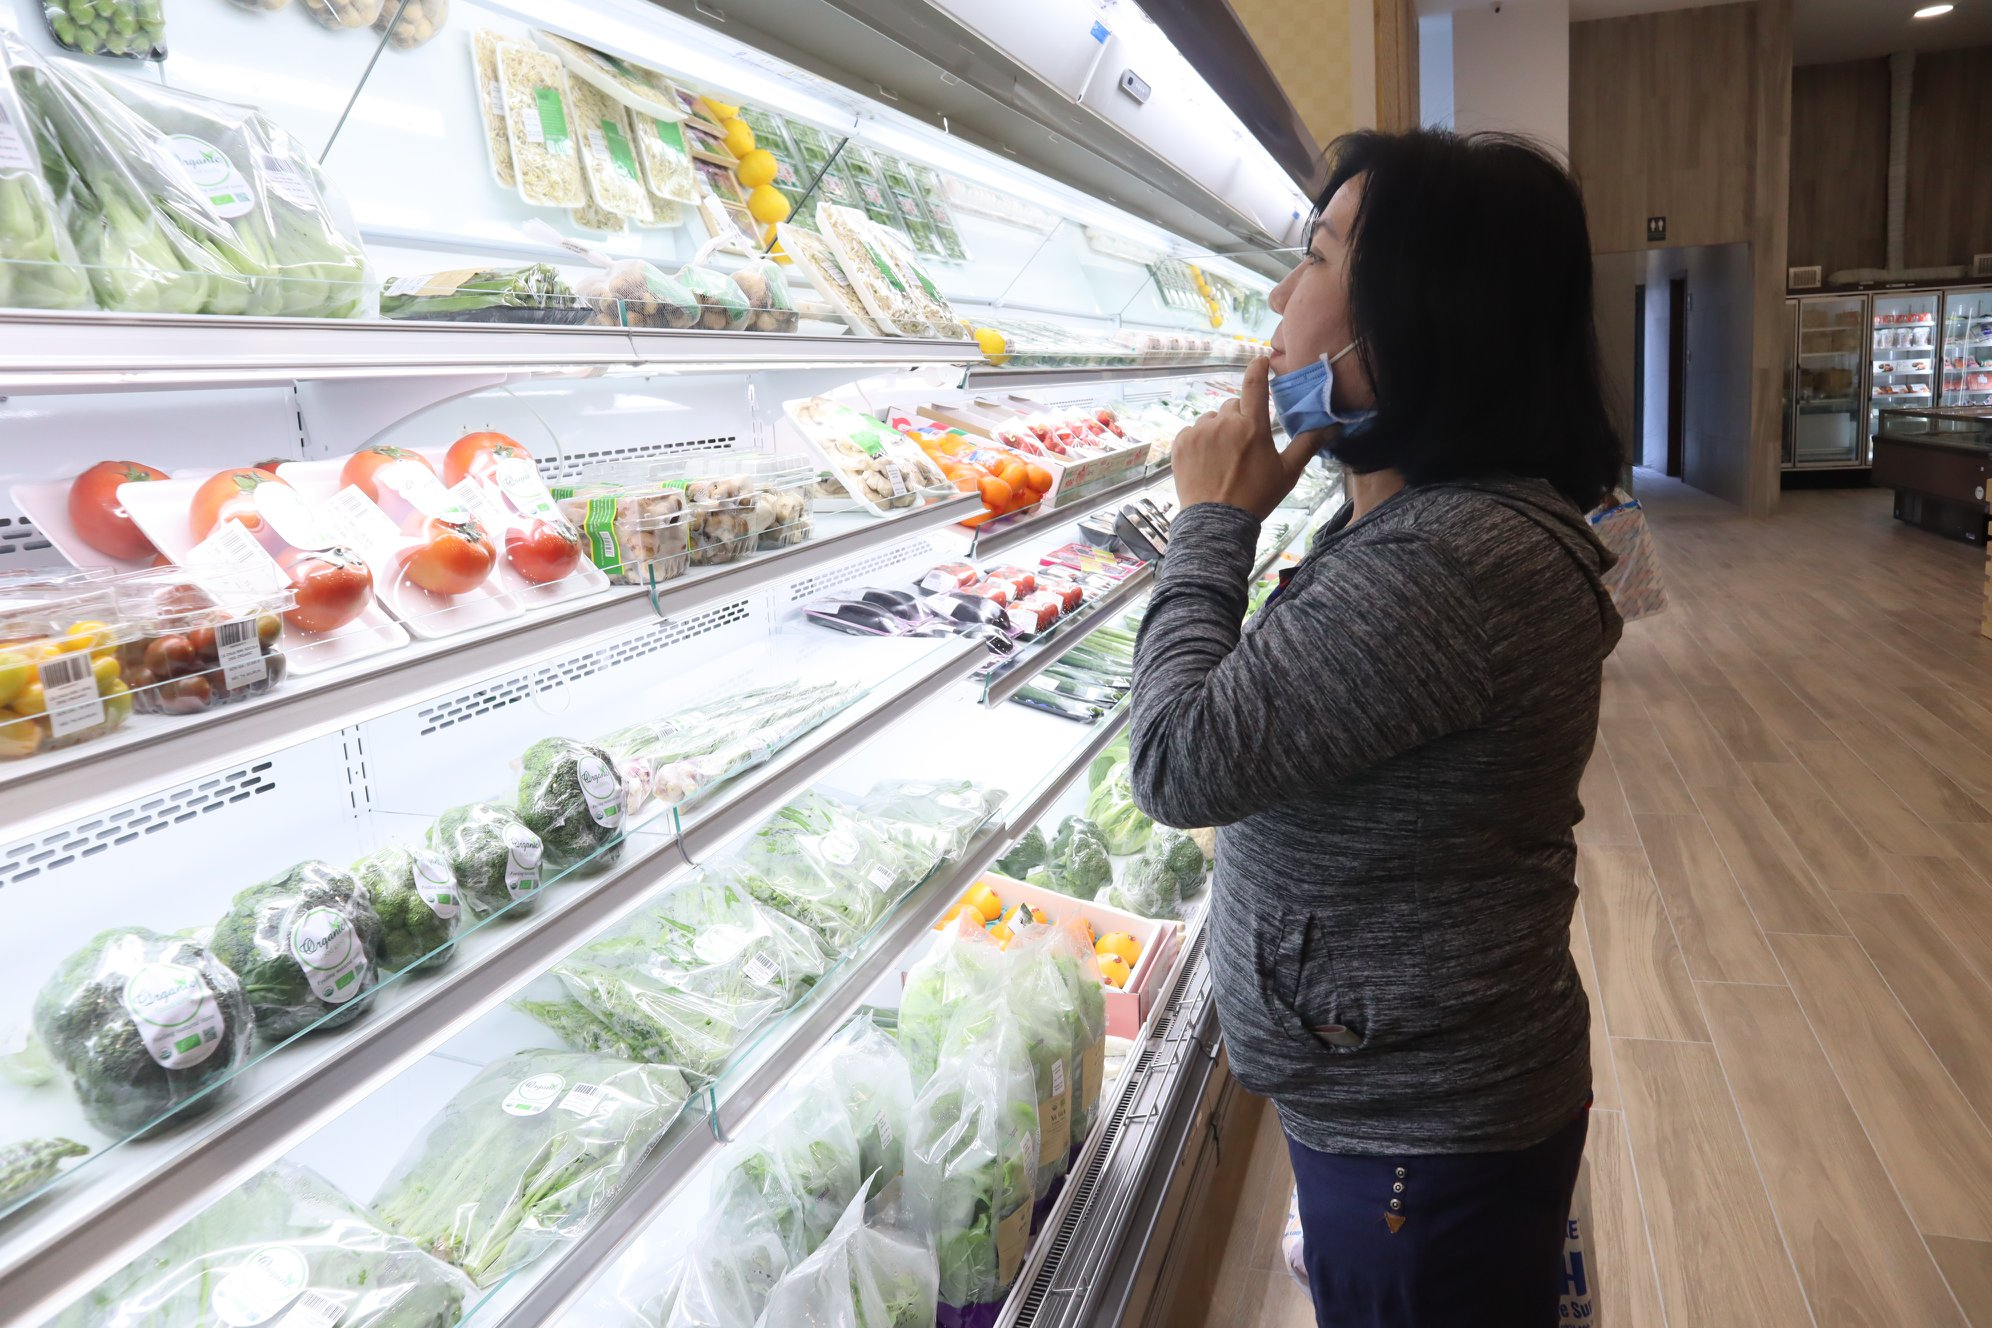 A woman shops for food at a supermarket in the Akuruhi Tower on Tran Quang Khai Street in District 1, Ho Chi Minh City, February 2020. Photo: Akuruhi